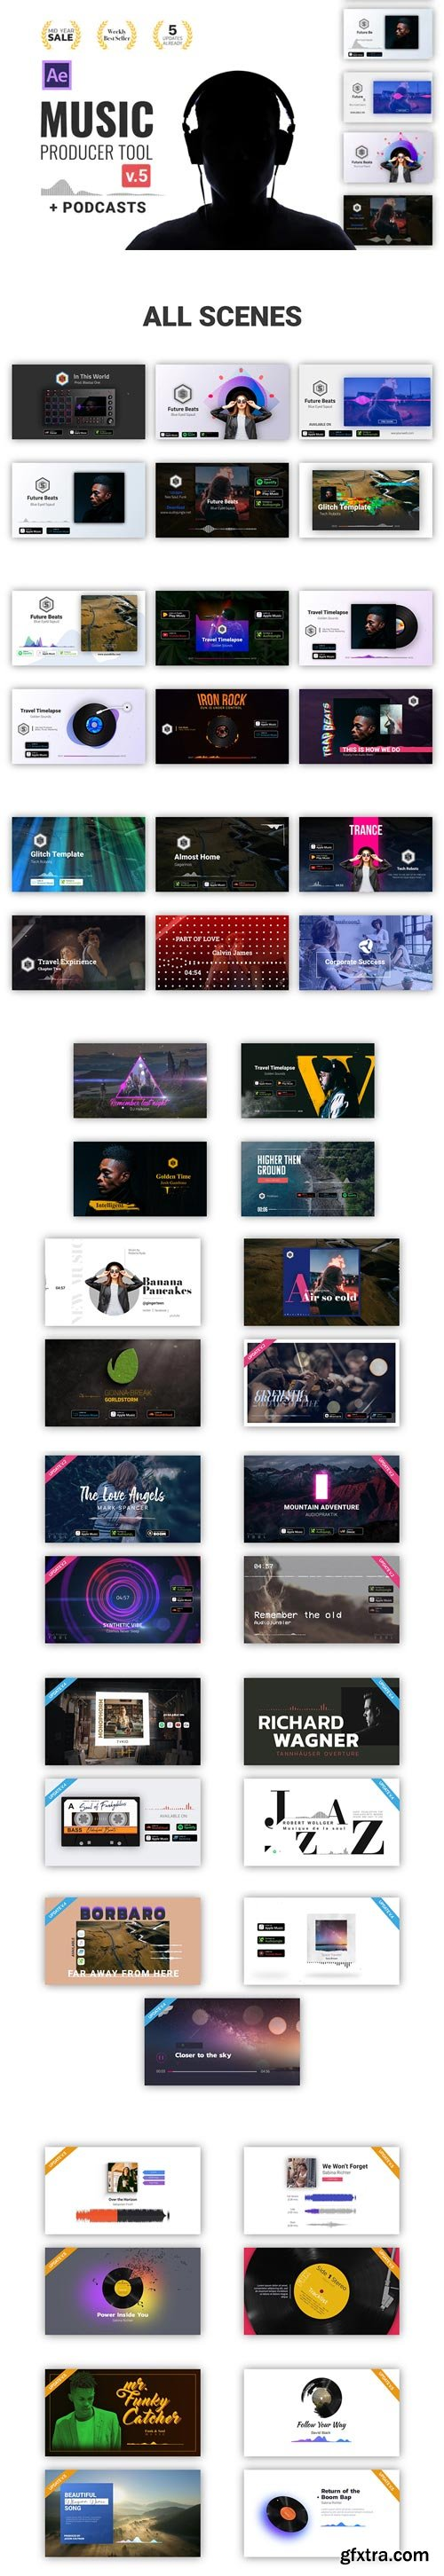 Videohive - Audio Visualization // Music Producer Tool V5 - 24314482